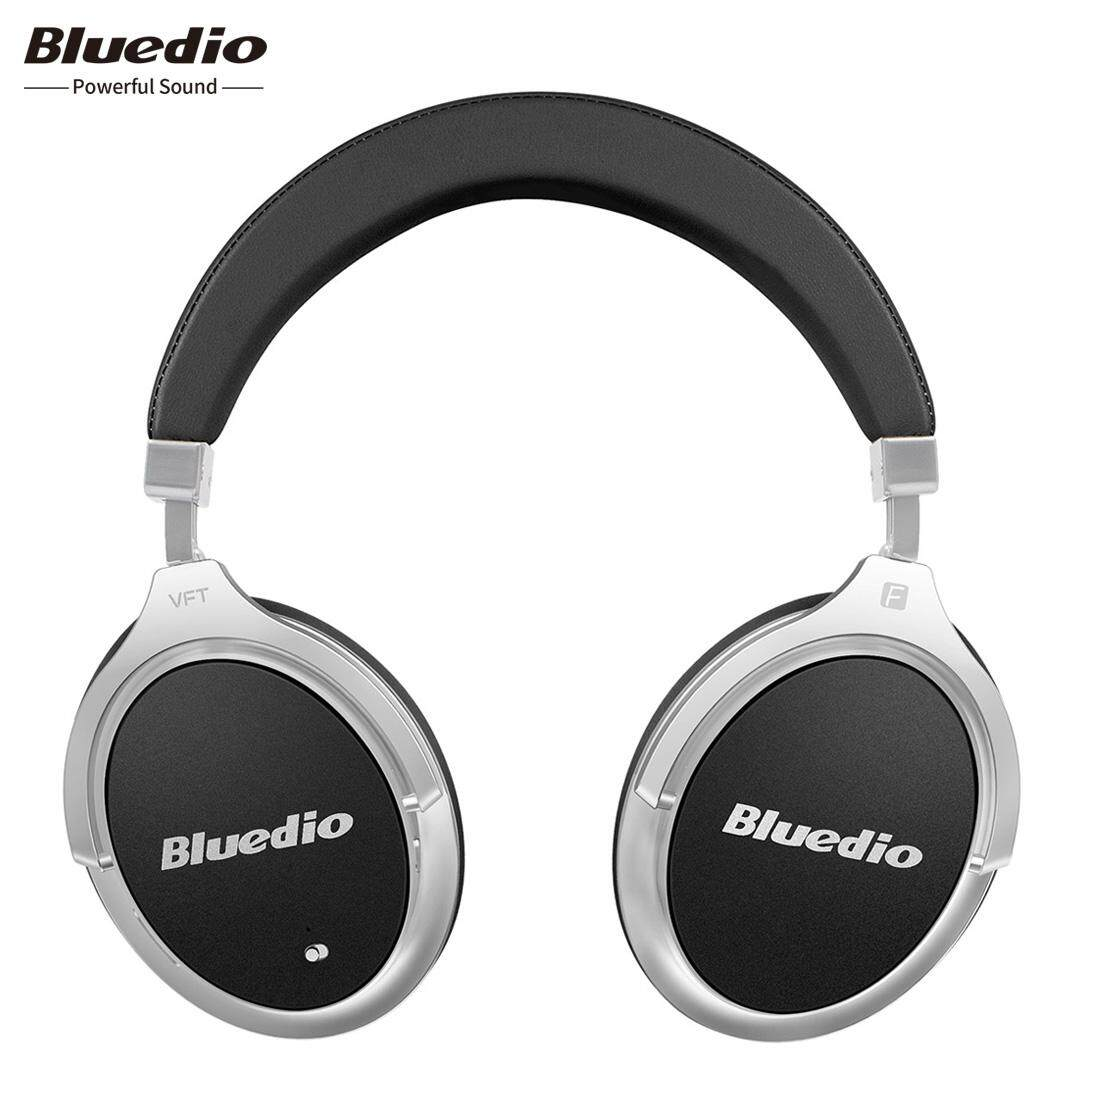 Bluedio F2 (faith) Wireless Bluetooth Headphones Active Noise Cancelling Bluetooth 4.2 Line In Over-Ear Business With Mic (black) By Bluedio Flagship Store.